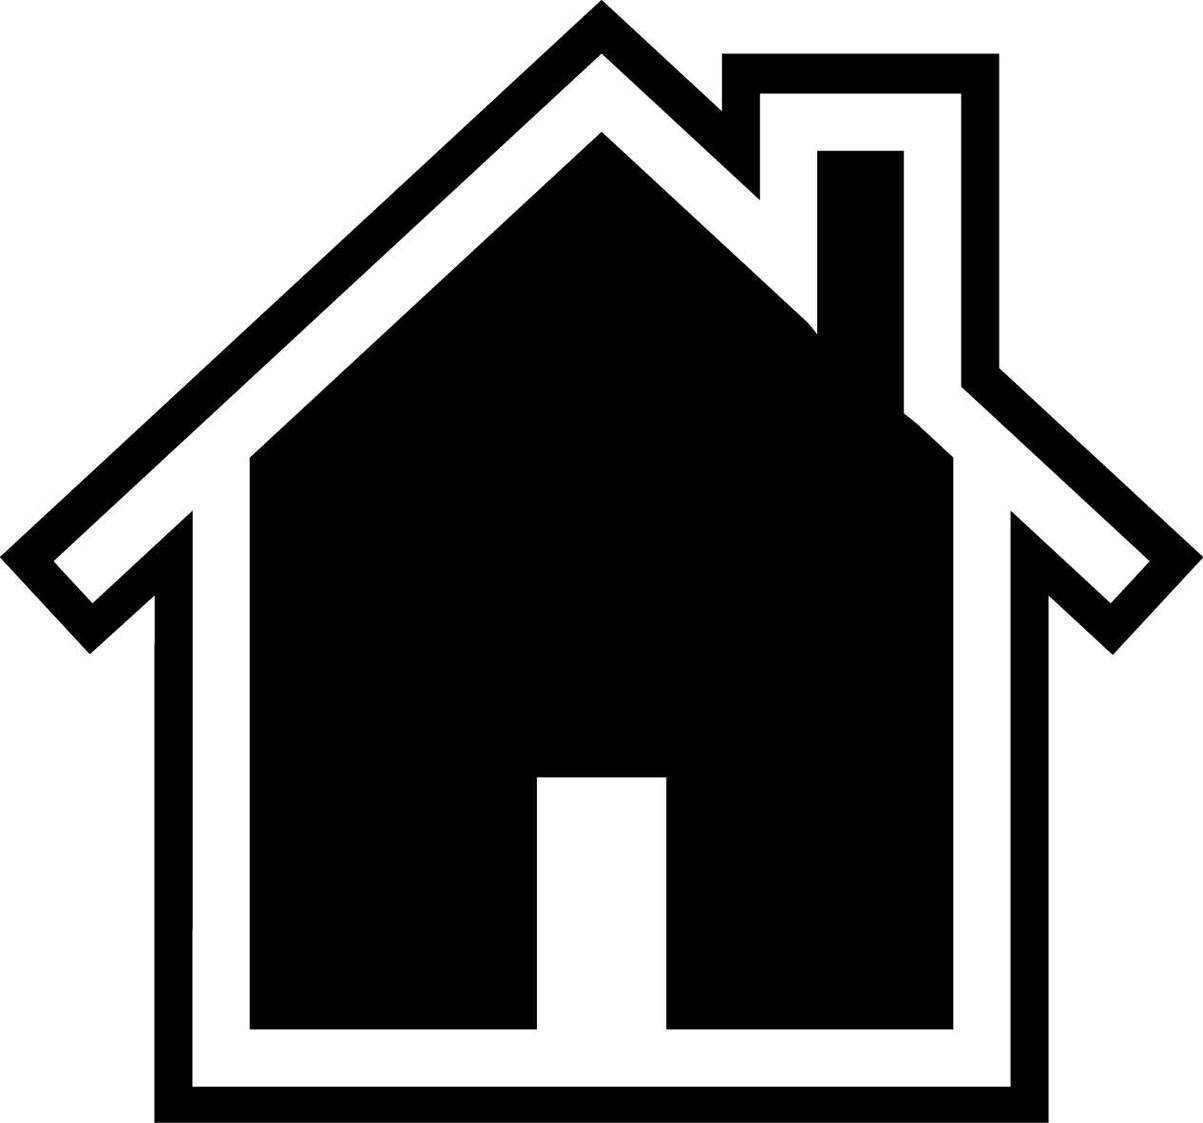 House to use for logo clipart clipart black and white download House to use for logo clipart - ClipartFest clipart black and white download